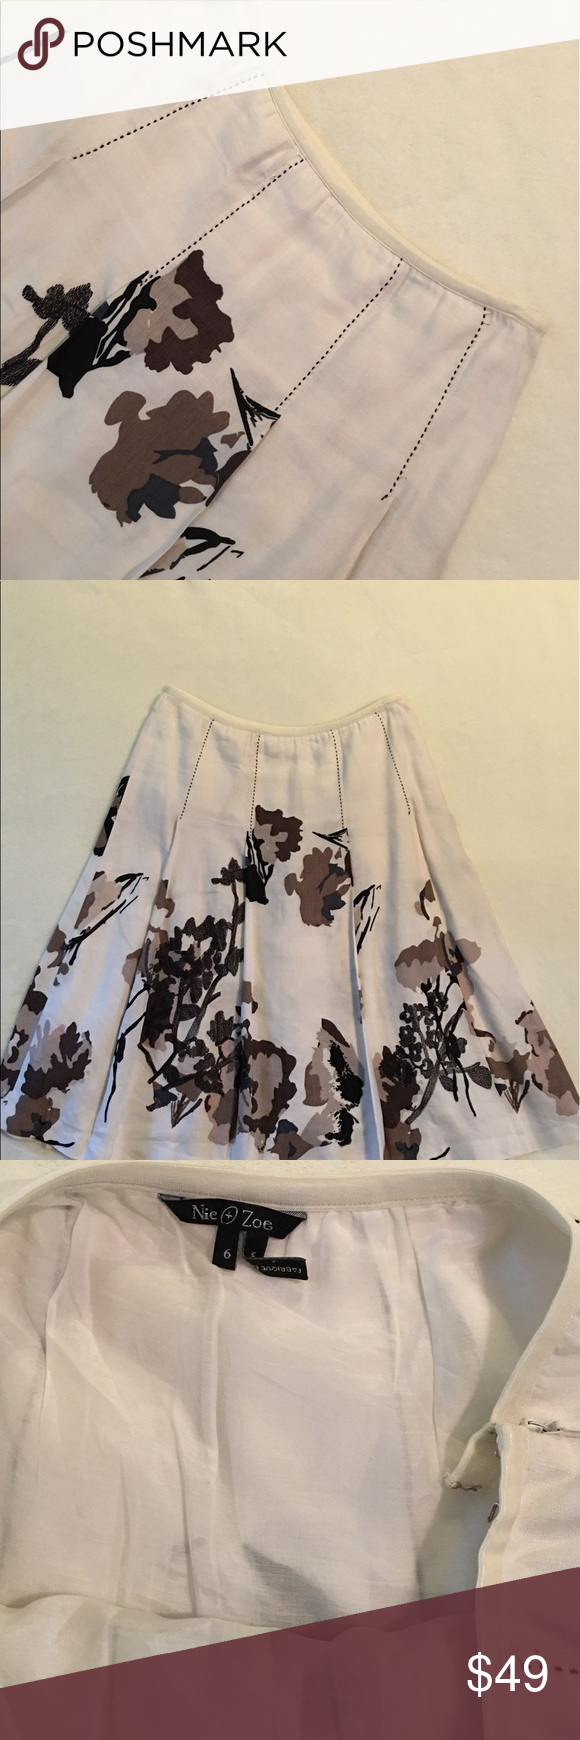 "NIC + ZOE skirt Used in excellent condition NIC + Zoe flirty flare floral print skirt; large pleats; side zipper & hook; small elastic trim around waist for extra room; waist to bottom is 25"", make an offer NIC + ZOE Skirts"